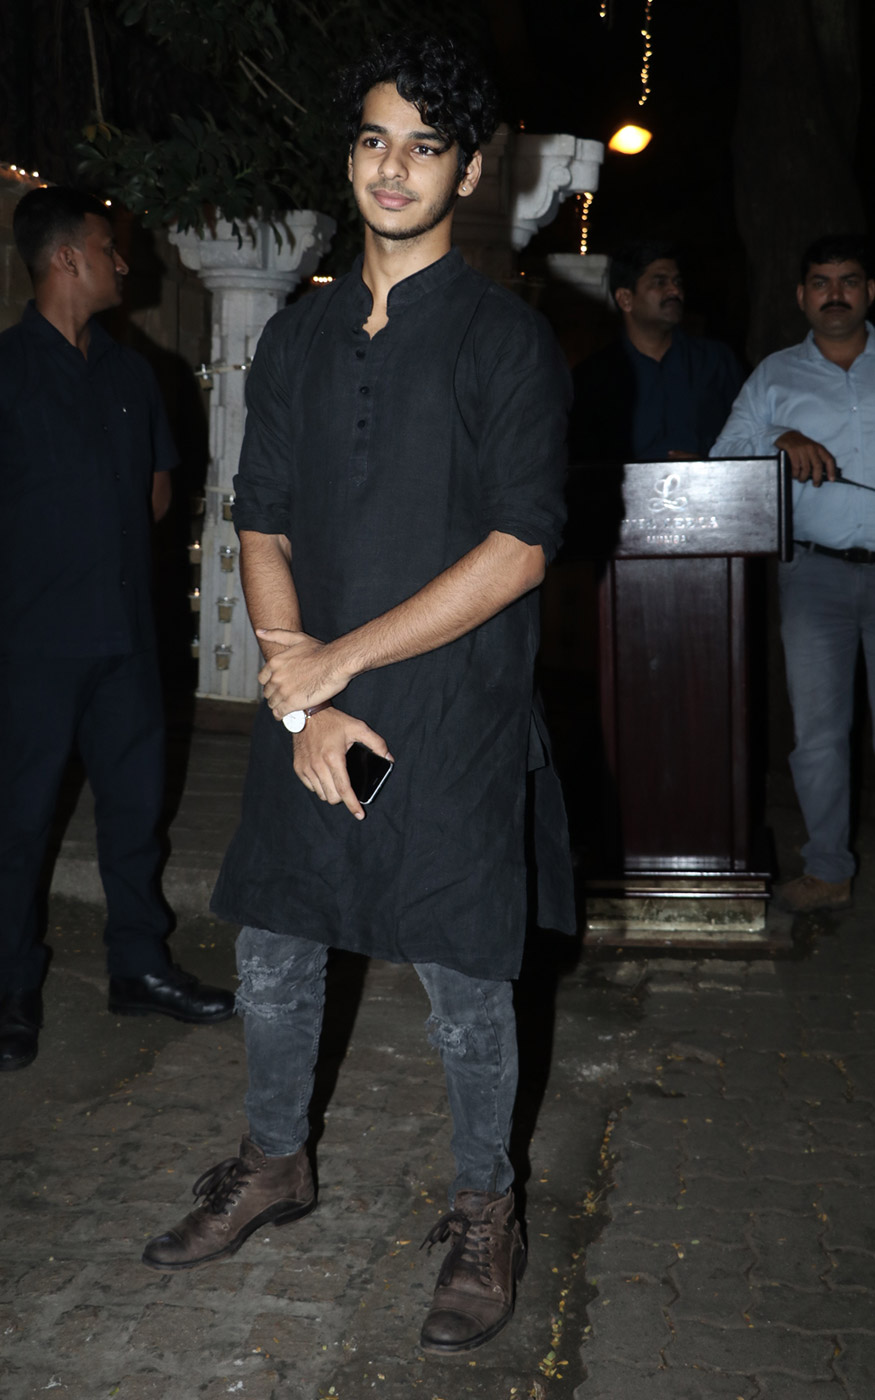 Shahid Kapoor's brother Ishaan Khattar attends Anil Kapoor's Diwali party hosted at his residence in Mumbai on October 19, 2017. (Image: Yogen Shah)